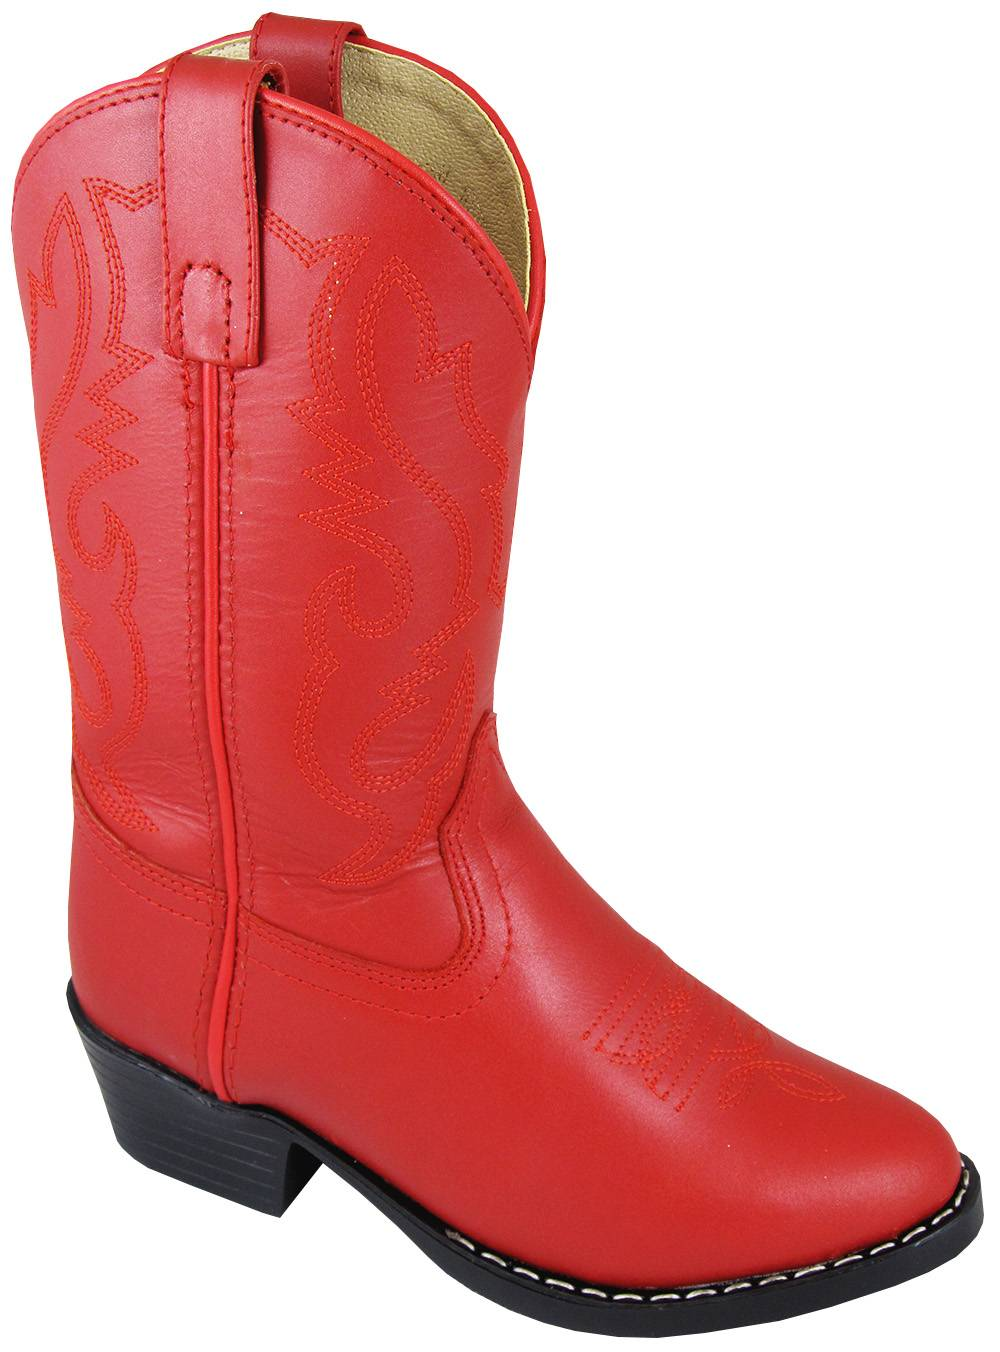 Smoky Mountain Denver Leather Boots - Kids, Red